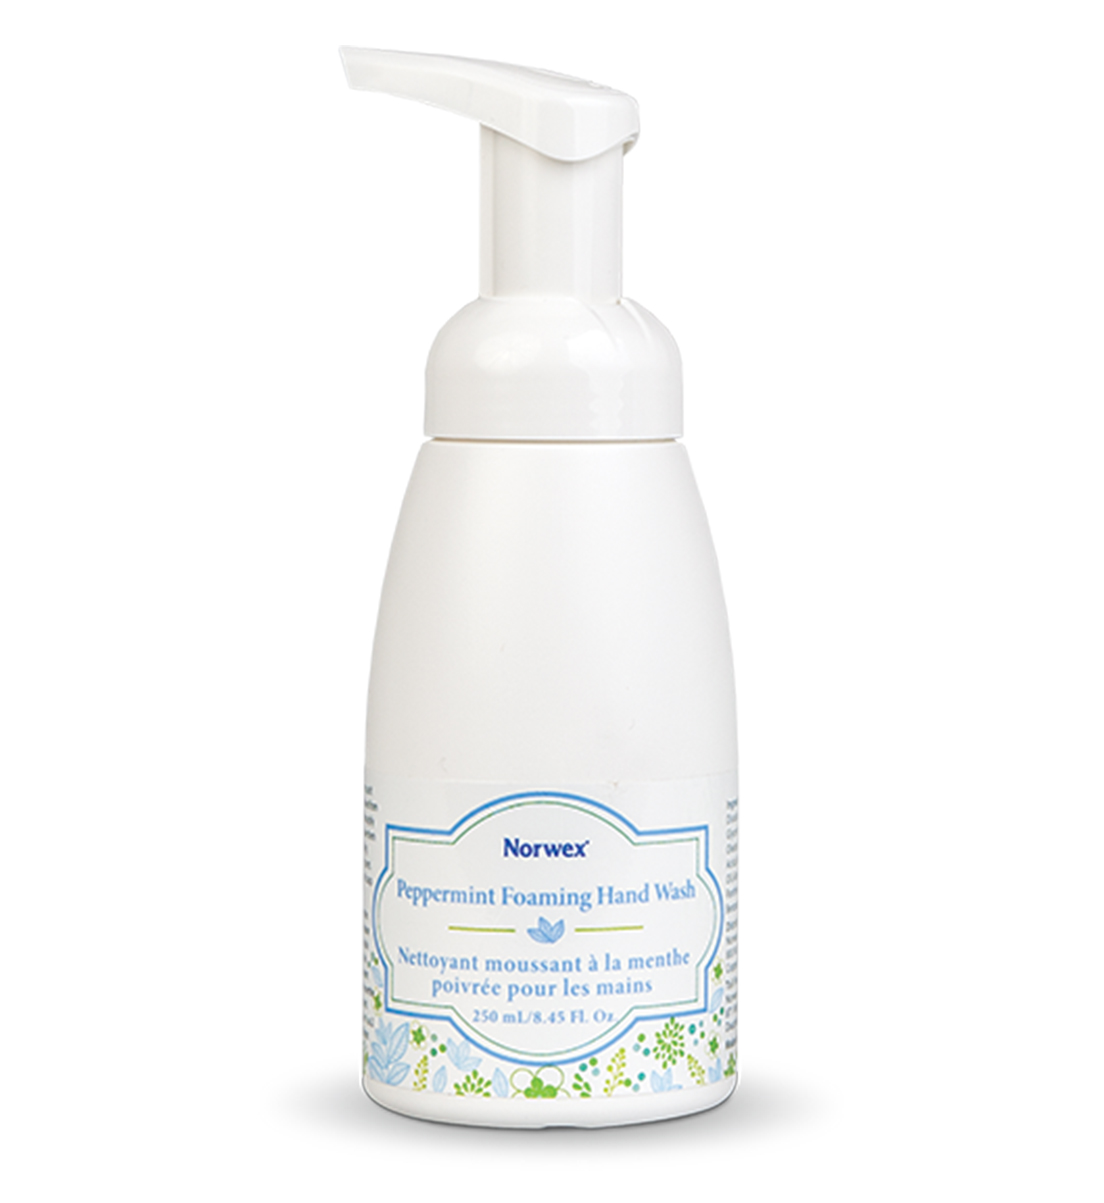 Peppermint Foaming Hand Wash